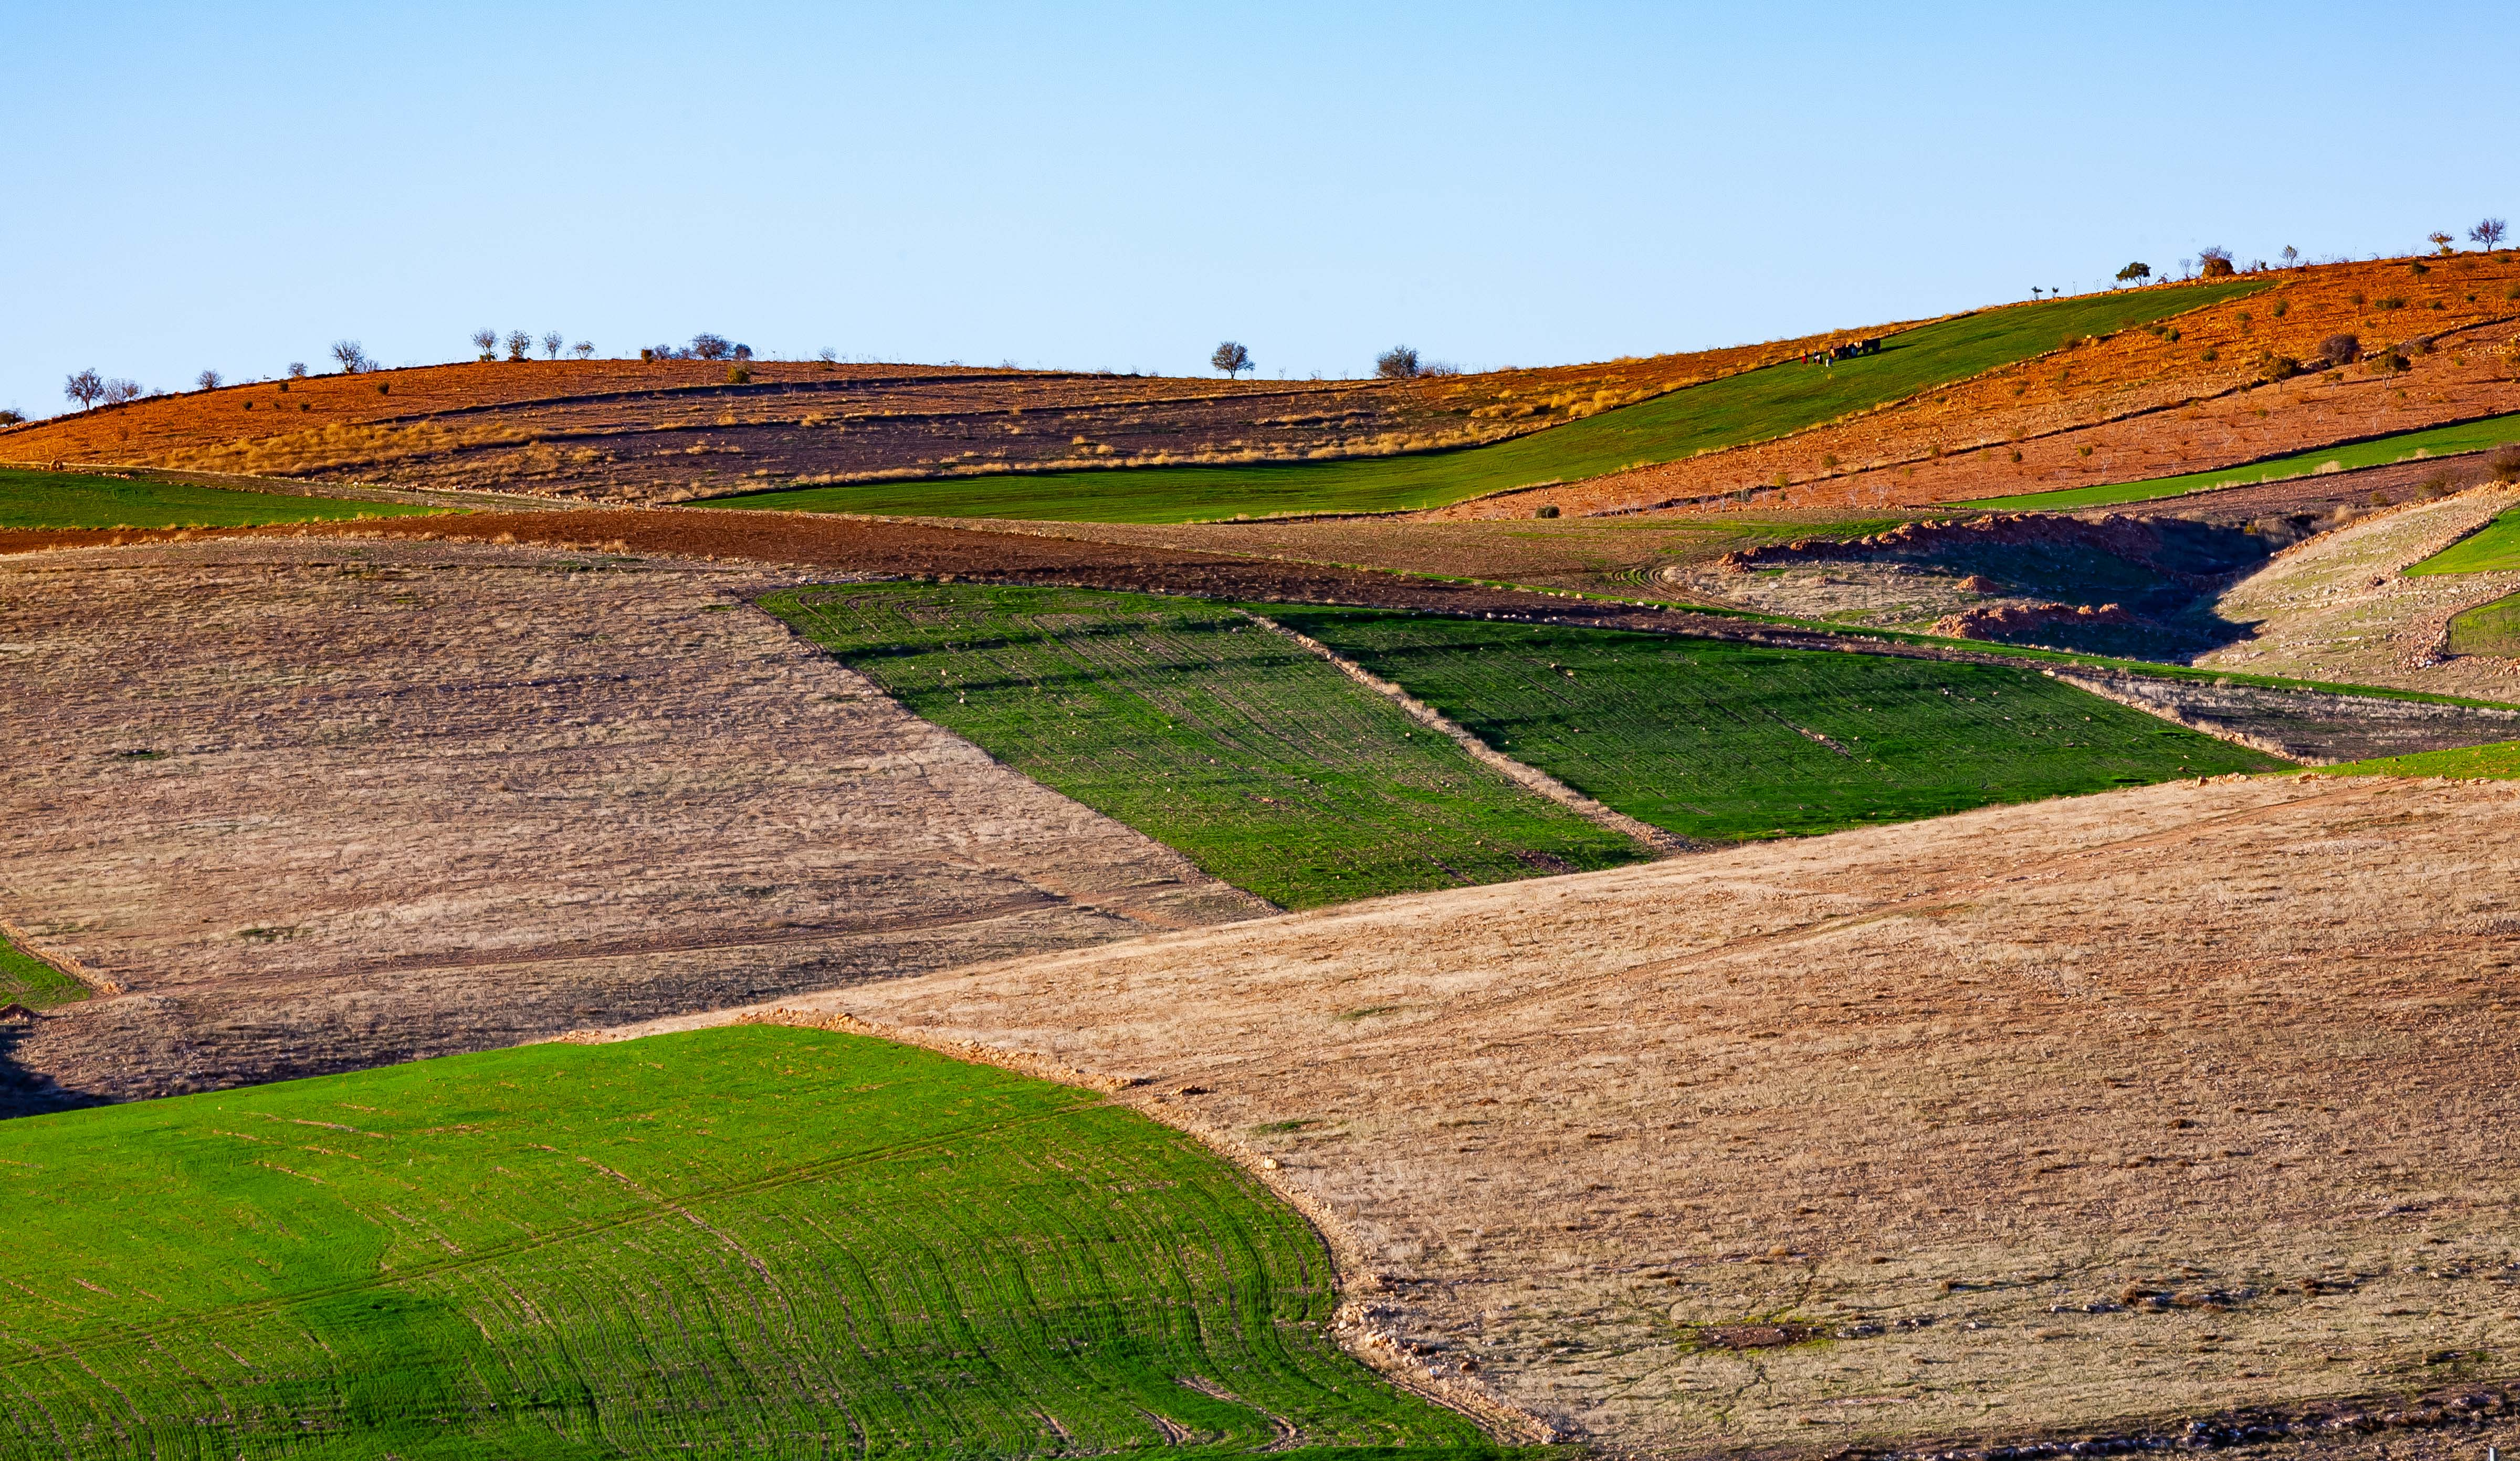 Turkey, Sanliurfa Prov, Fields, 2009, IMG 1637